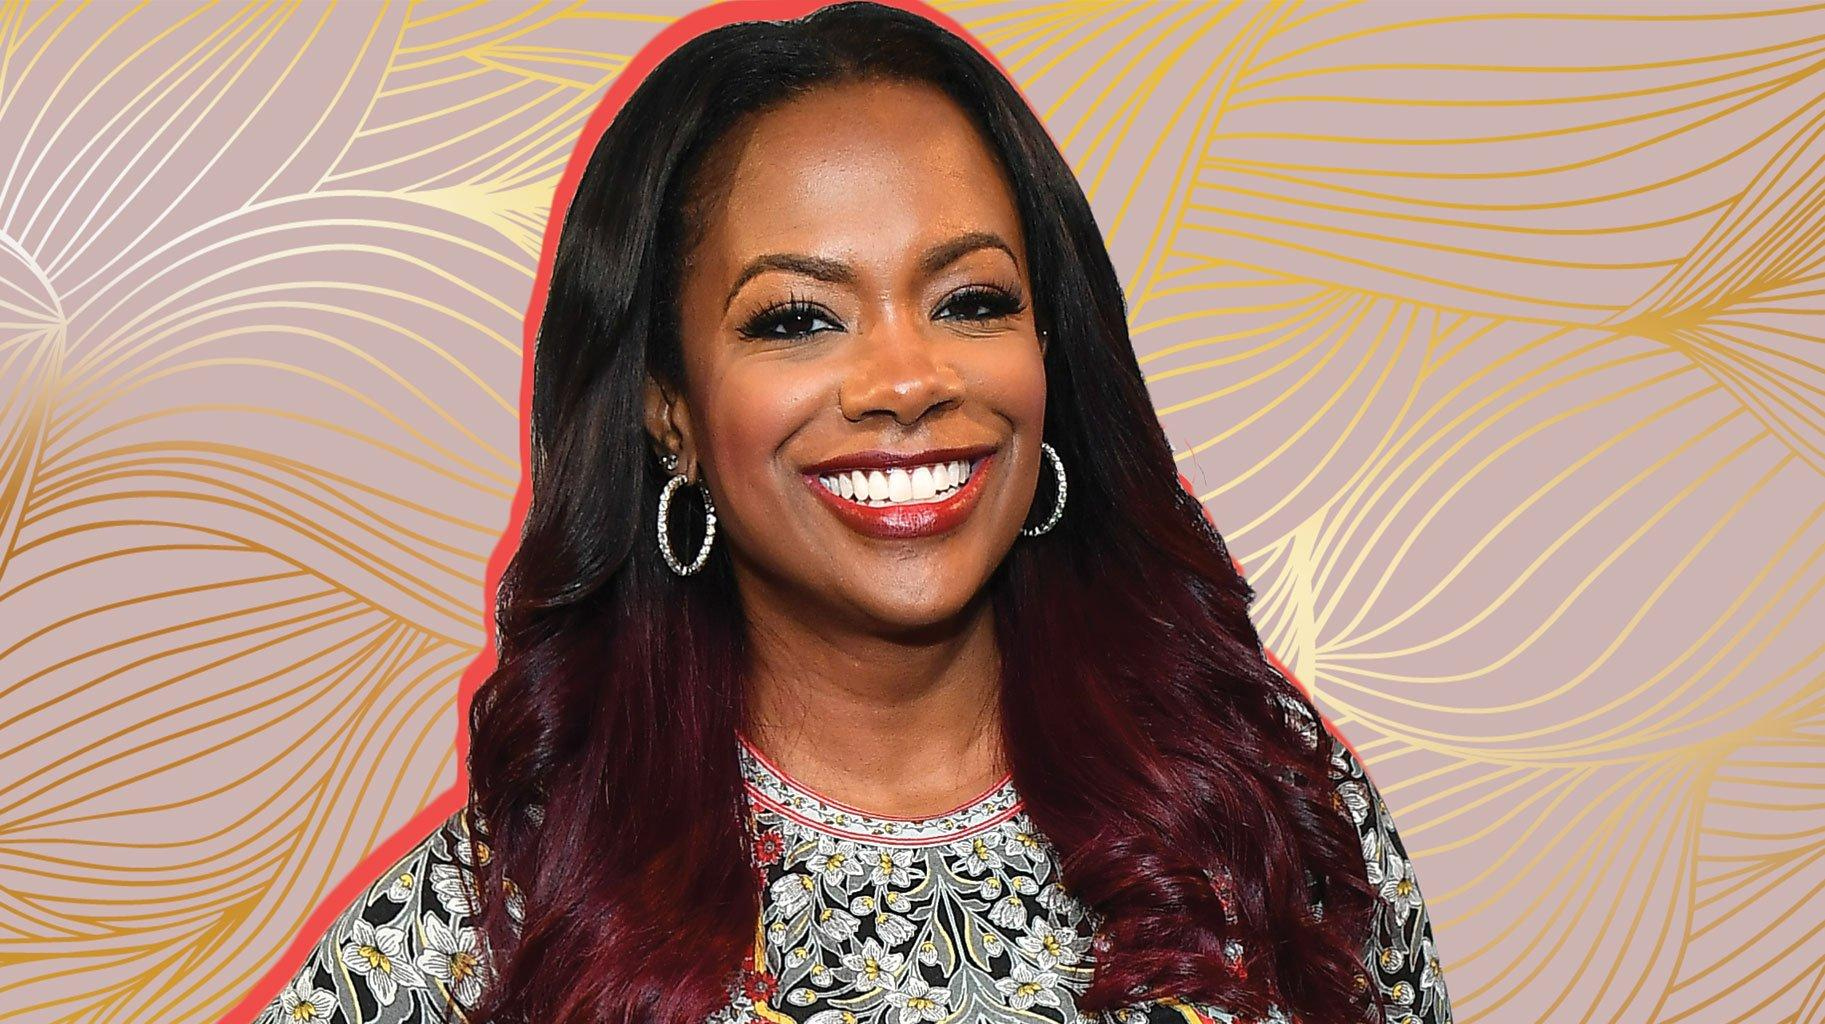 Kandi Burruss Addresses Angry Fans Who Want To Watch RHOA - The Show Did Not Air The Last Two Weeks